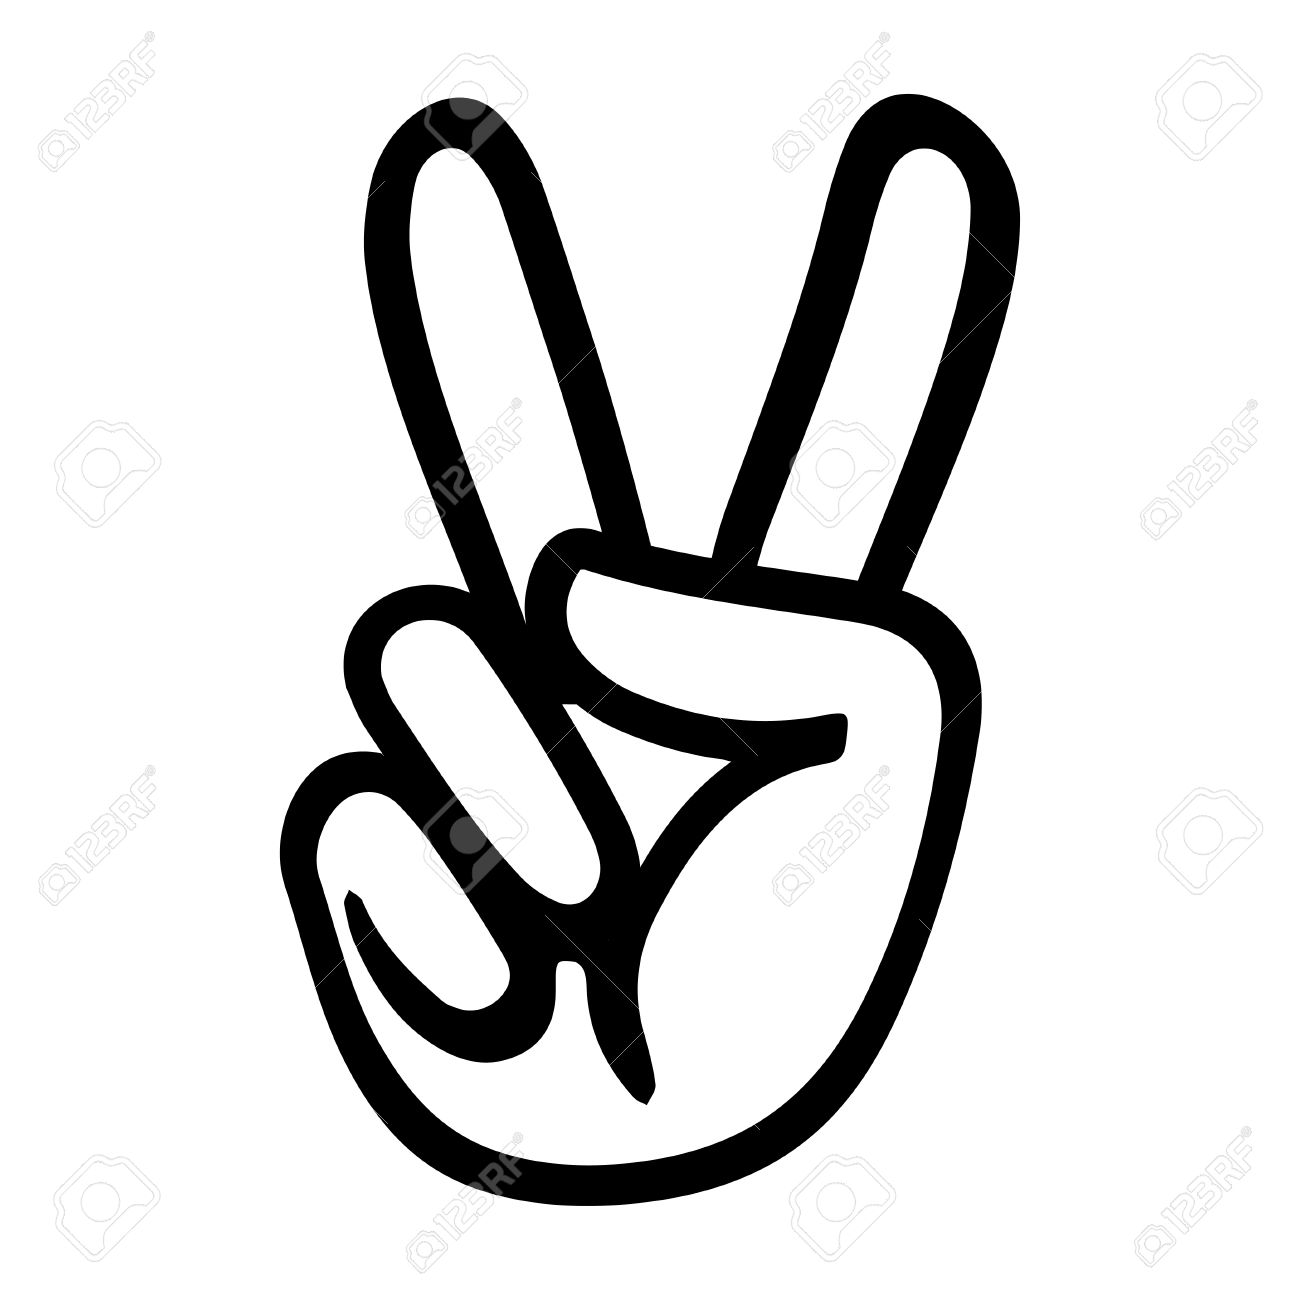 8208 Peace Sign Fingers Cliparts Stock Vector And Royalty Free